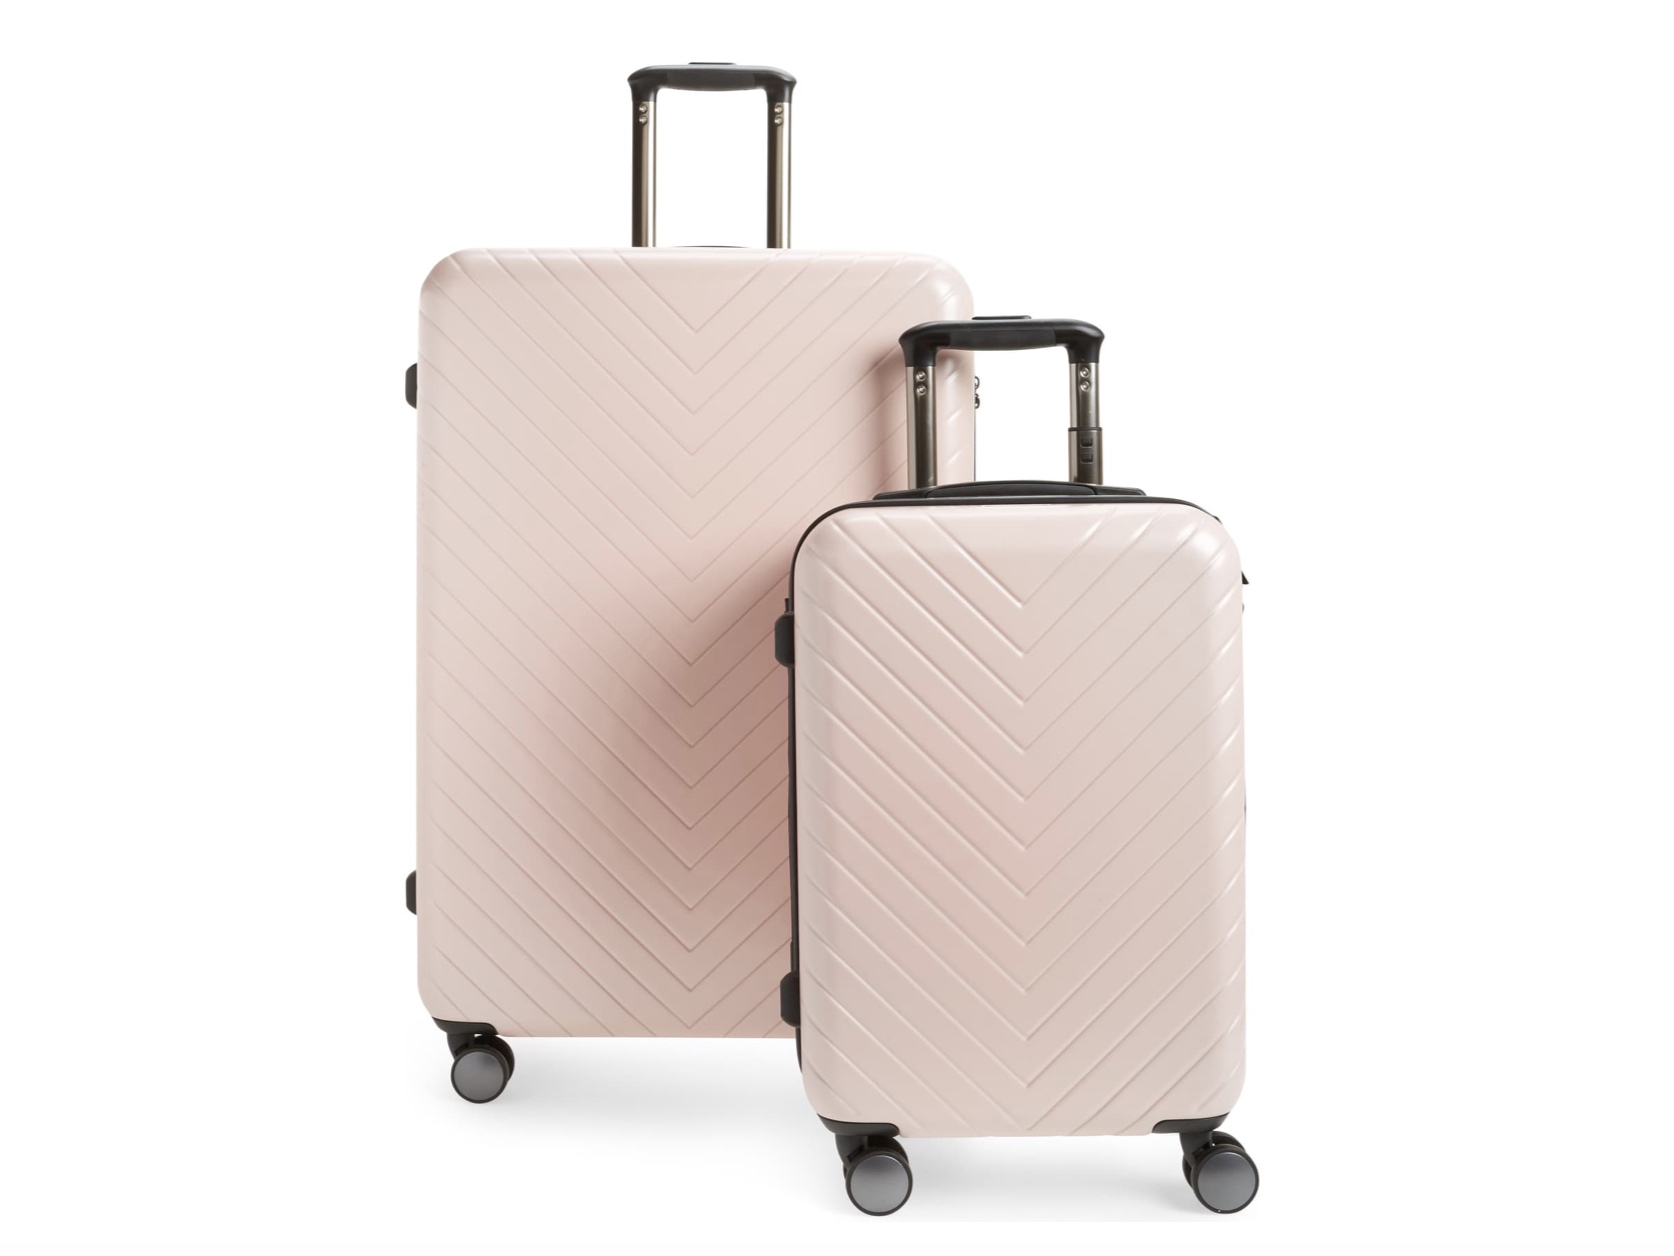 nordstrom+pink+luggage+set.jpg